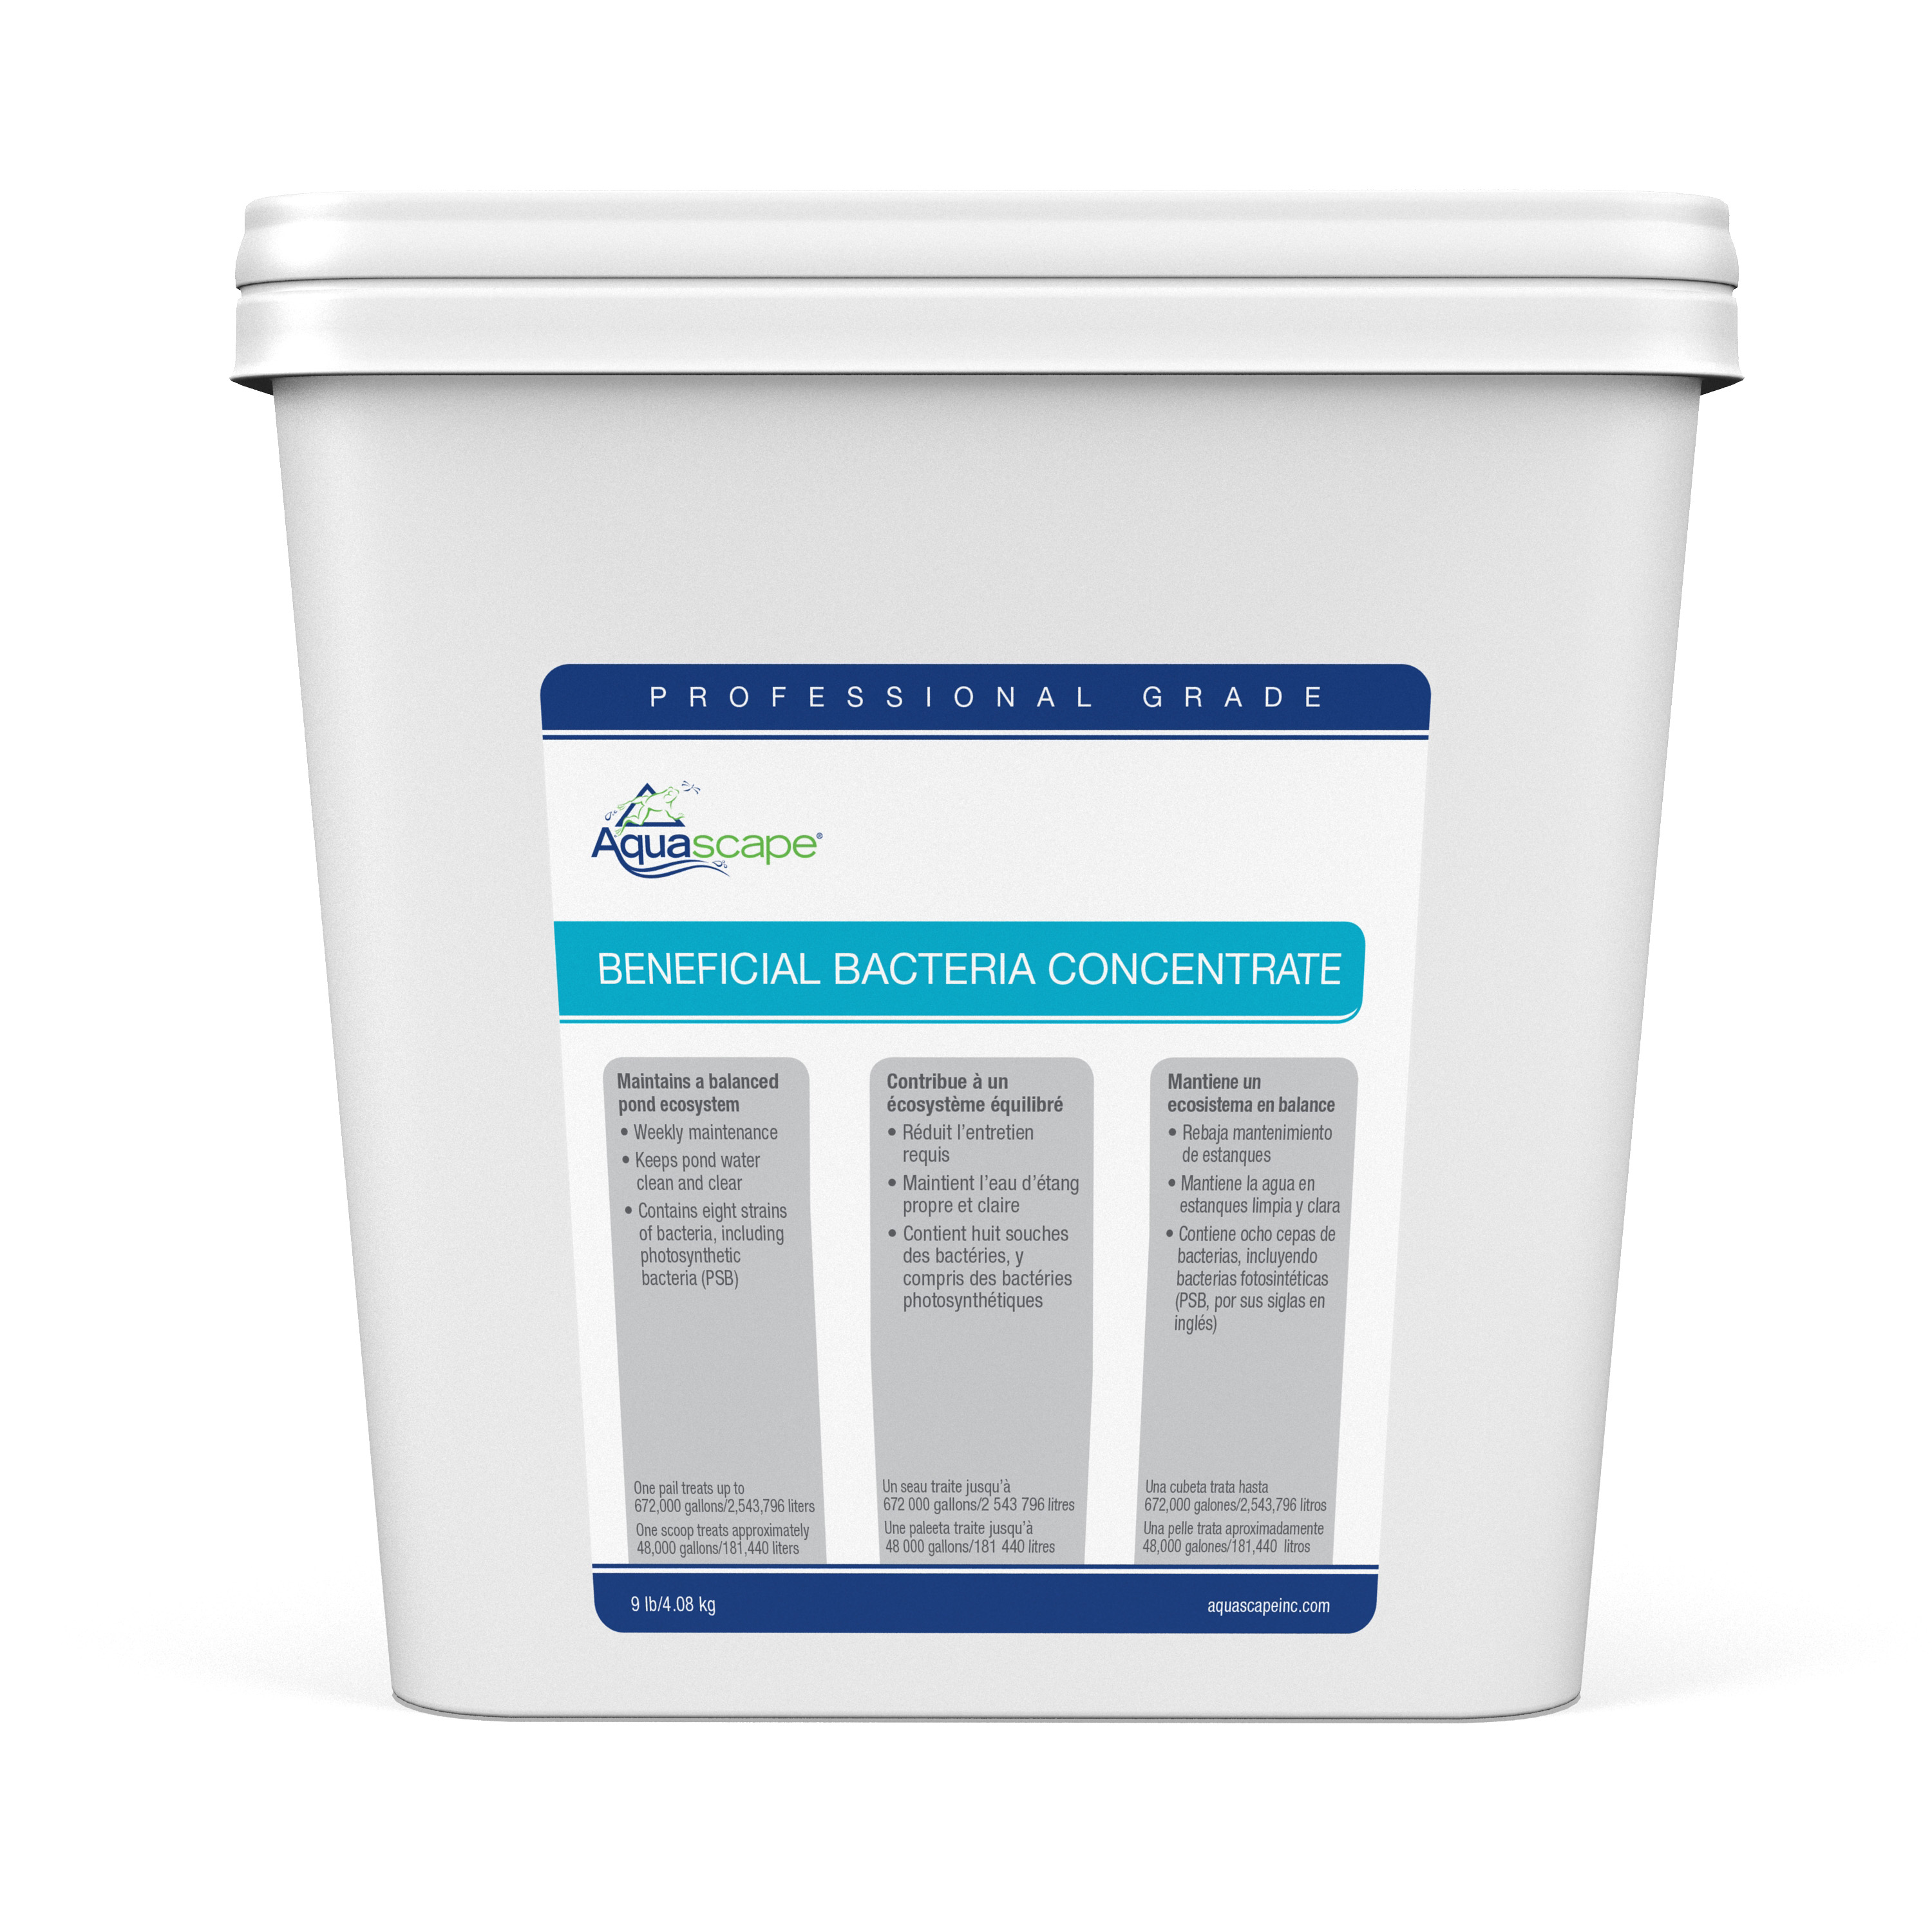 Beneficial Bacteria Concentrate Professional Grade - 4.08kg / 9lb